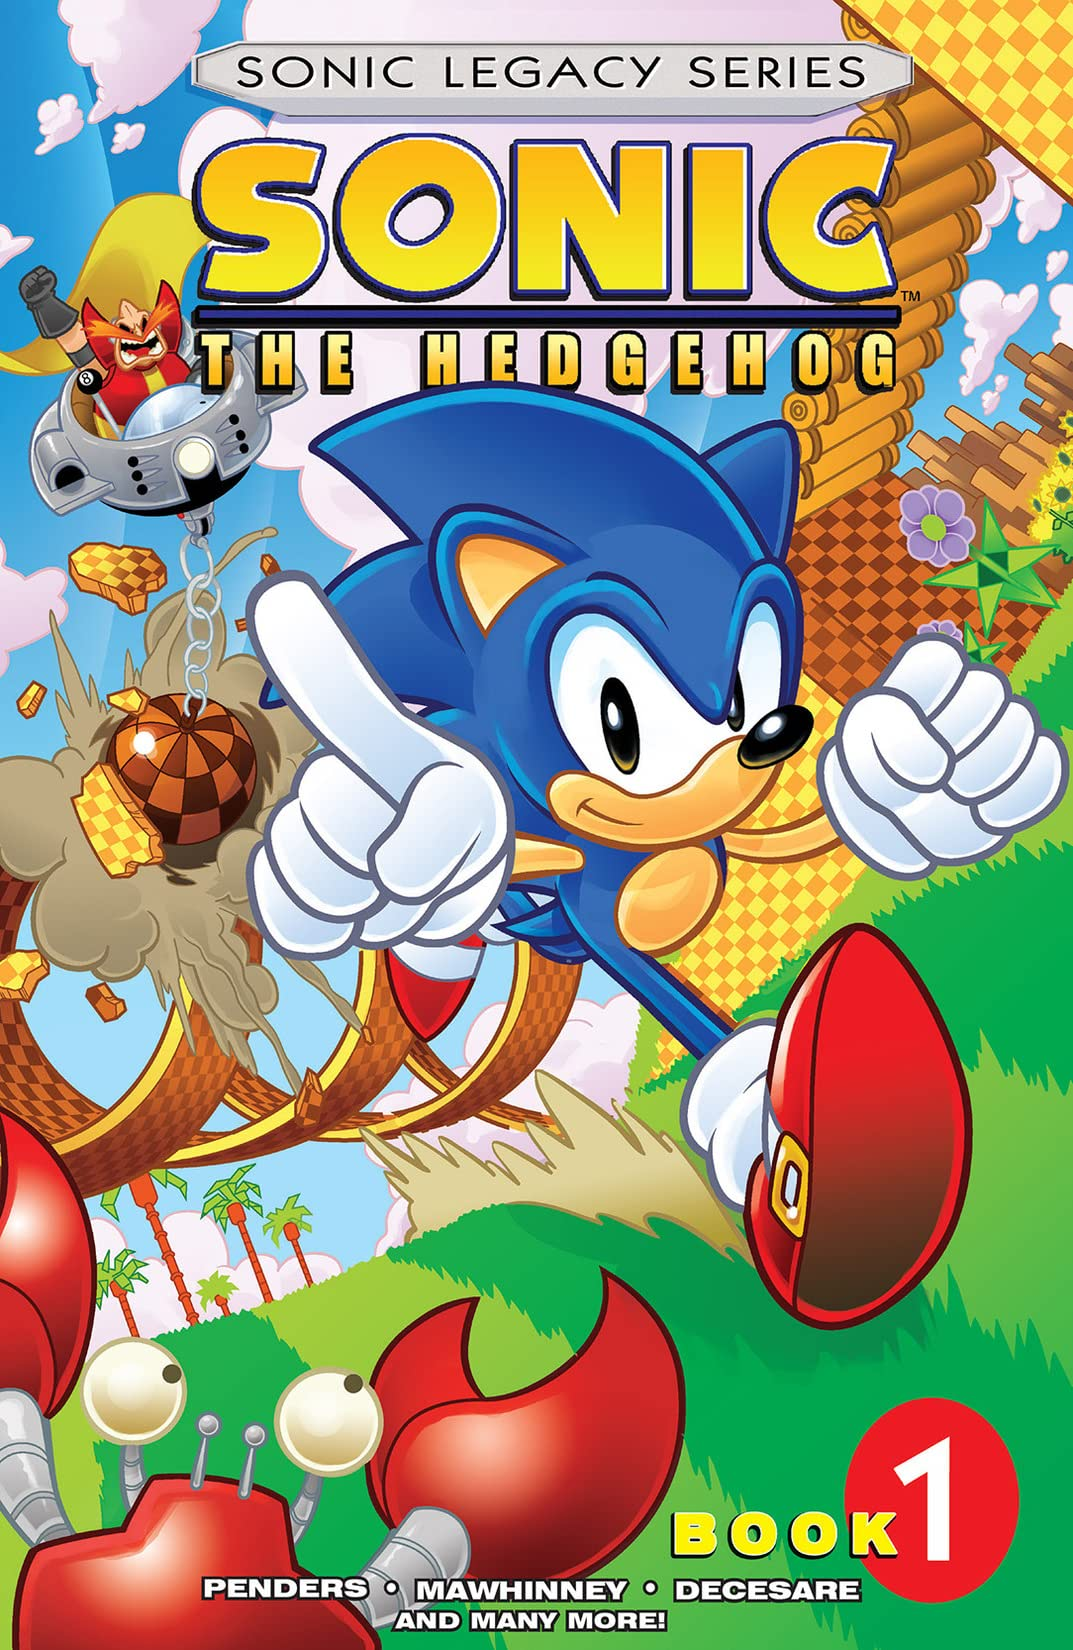 Sonic Legacy Series: Book 1